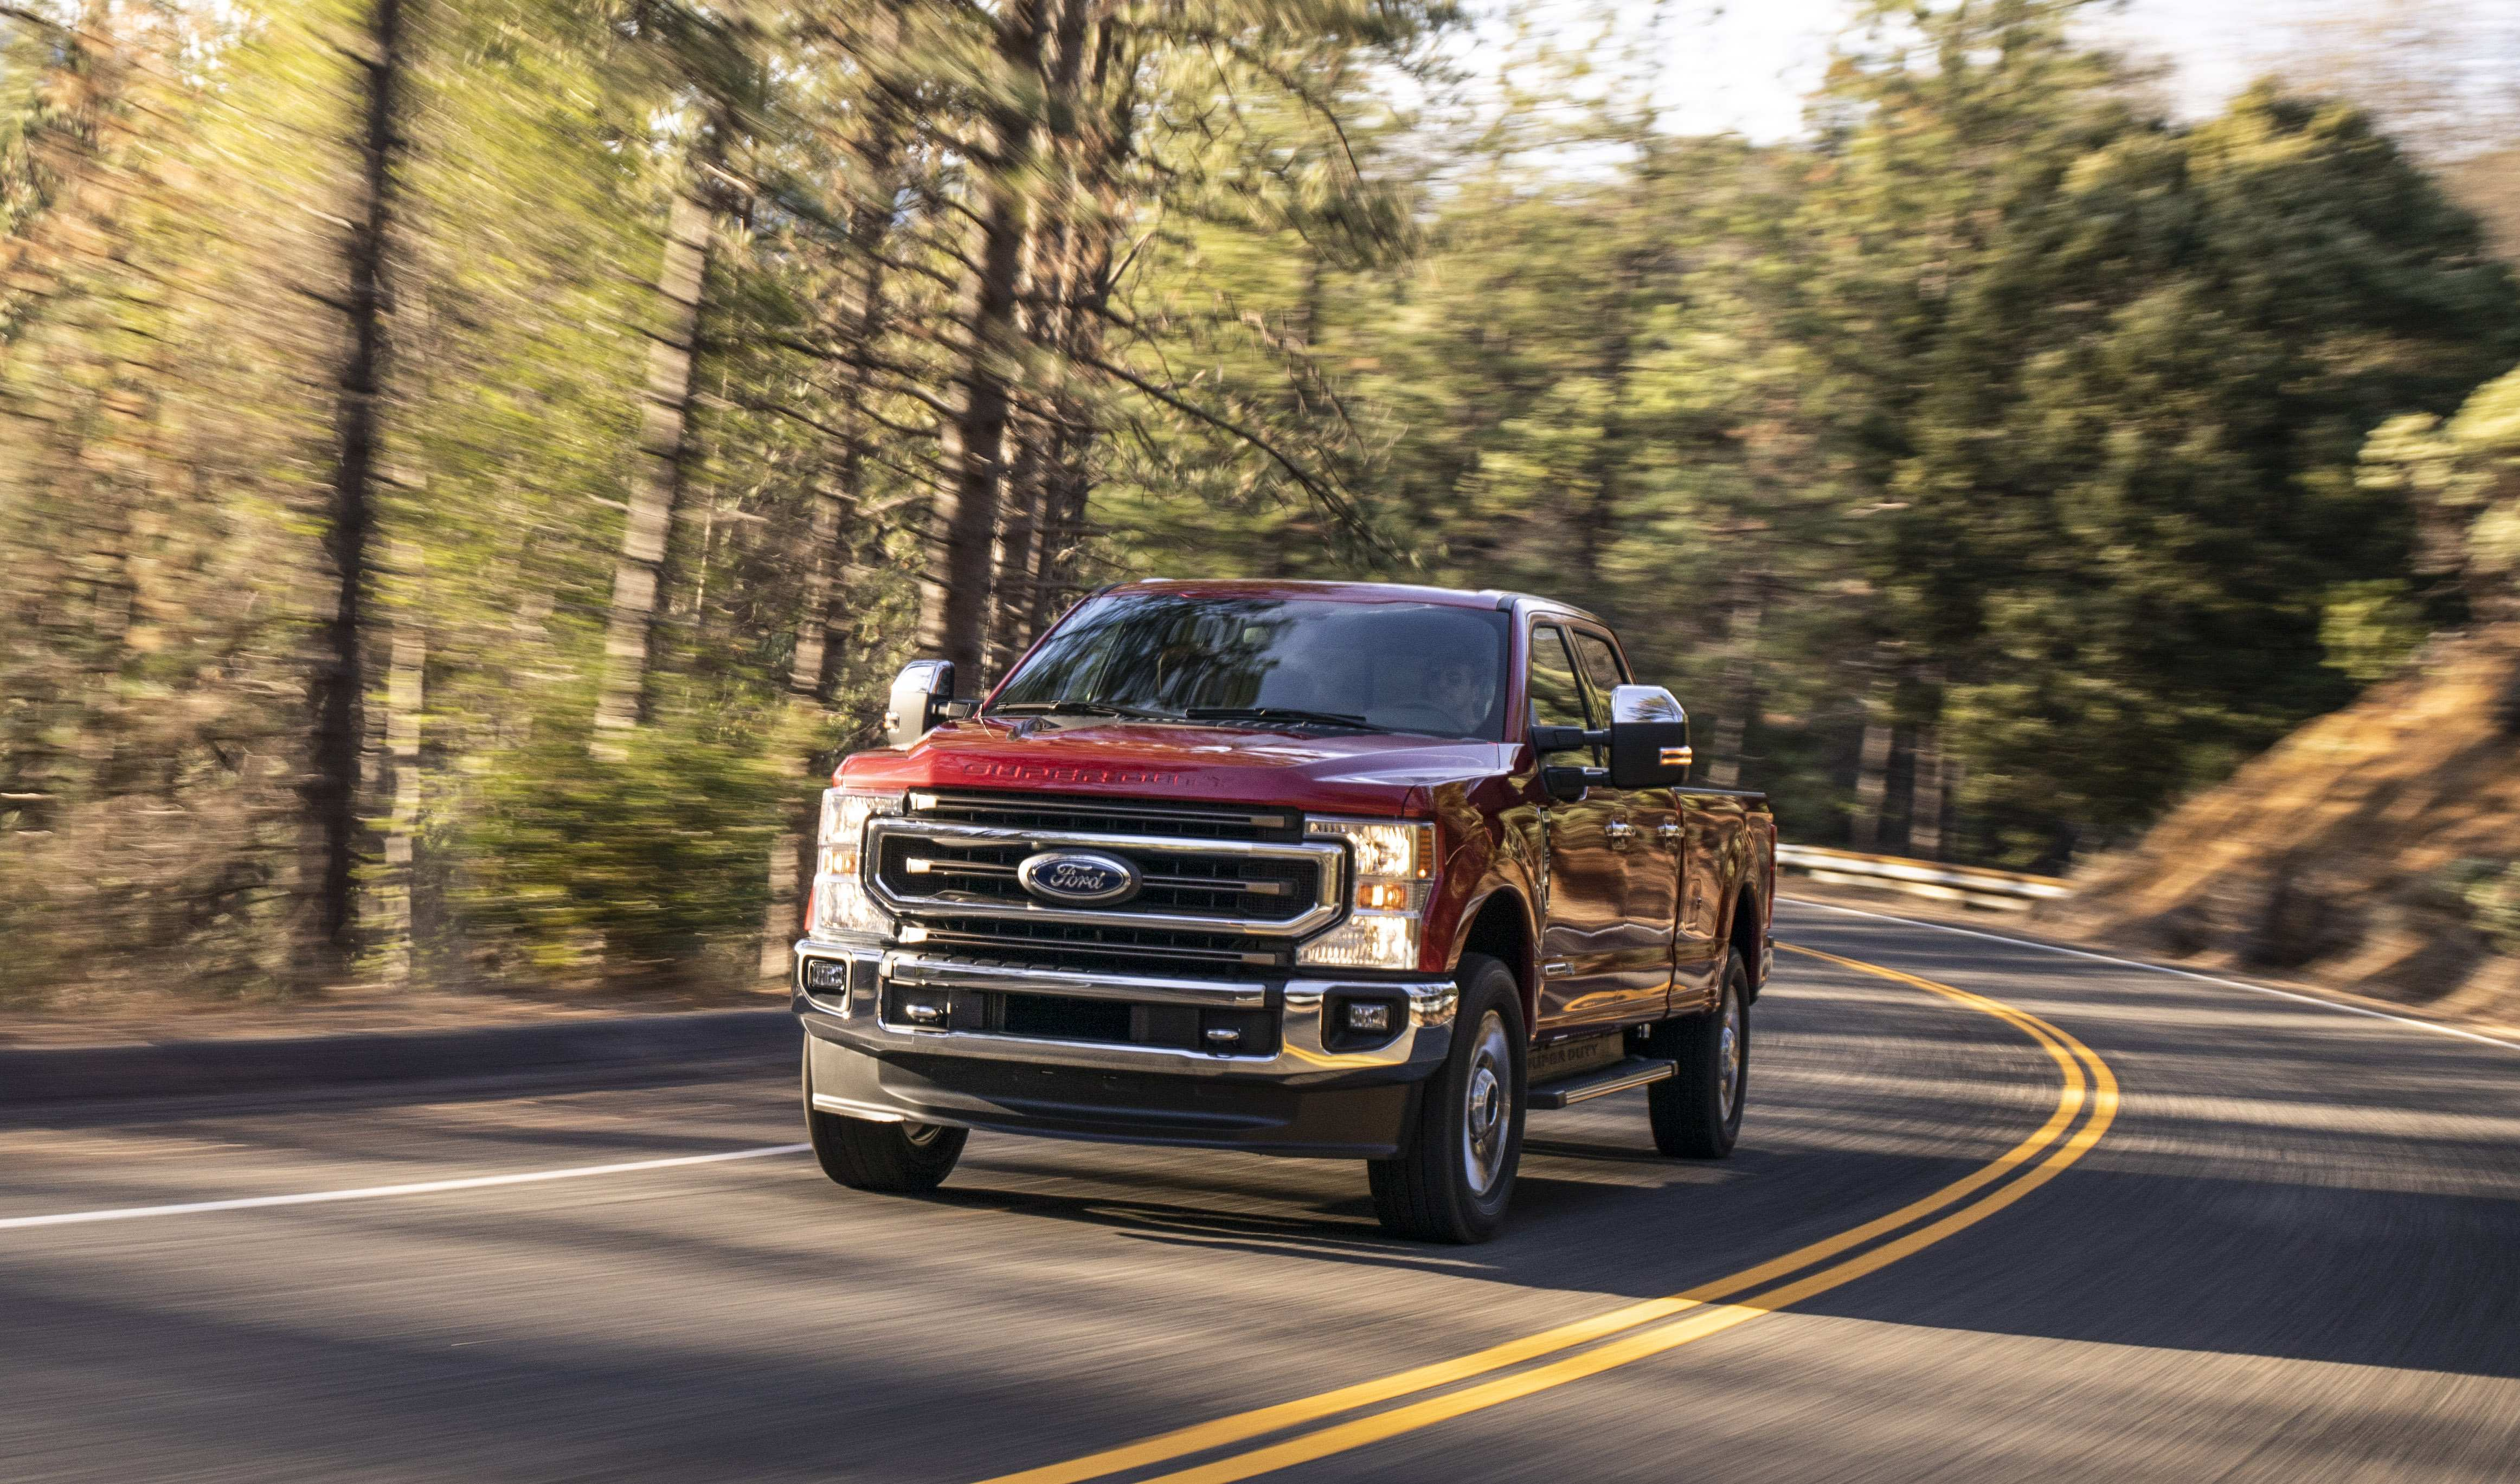 81 A Ford Vehicle Lineup 2020 Interior